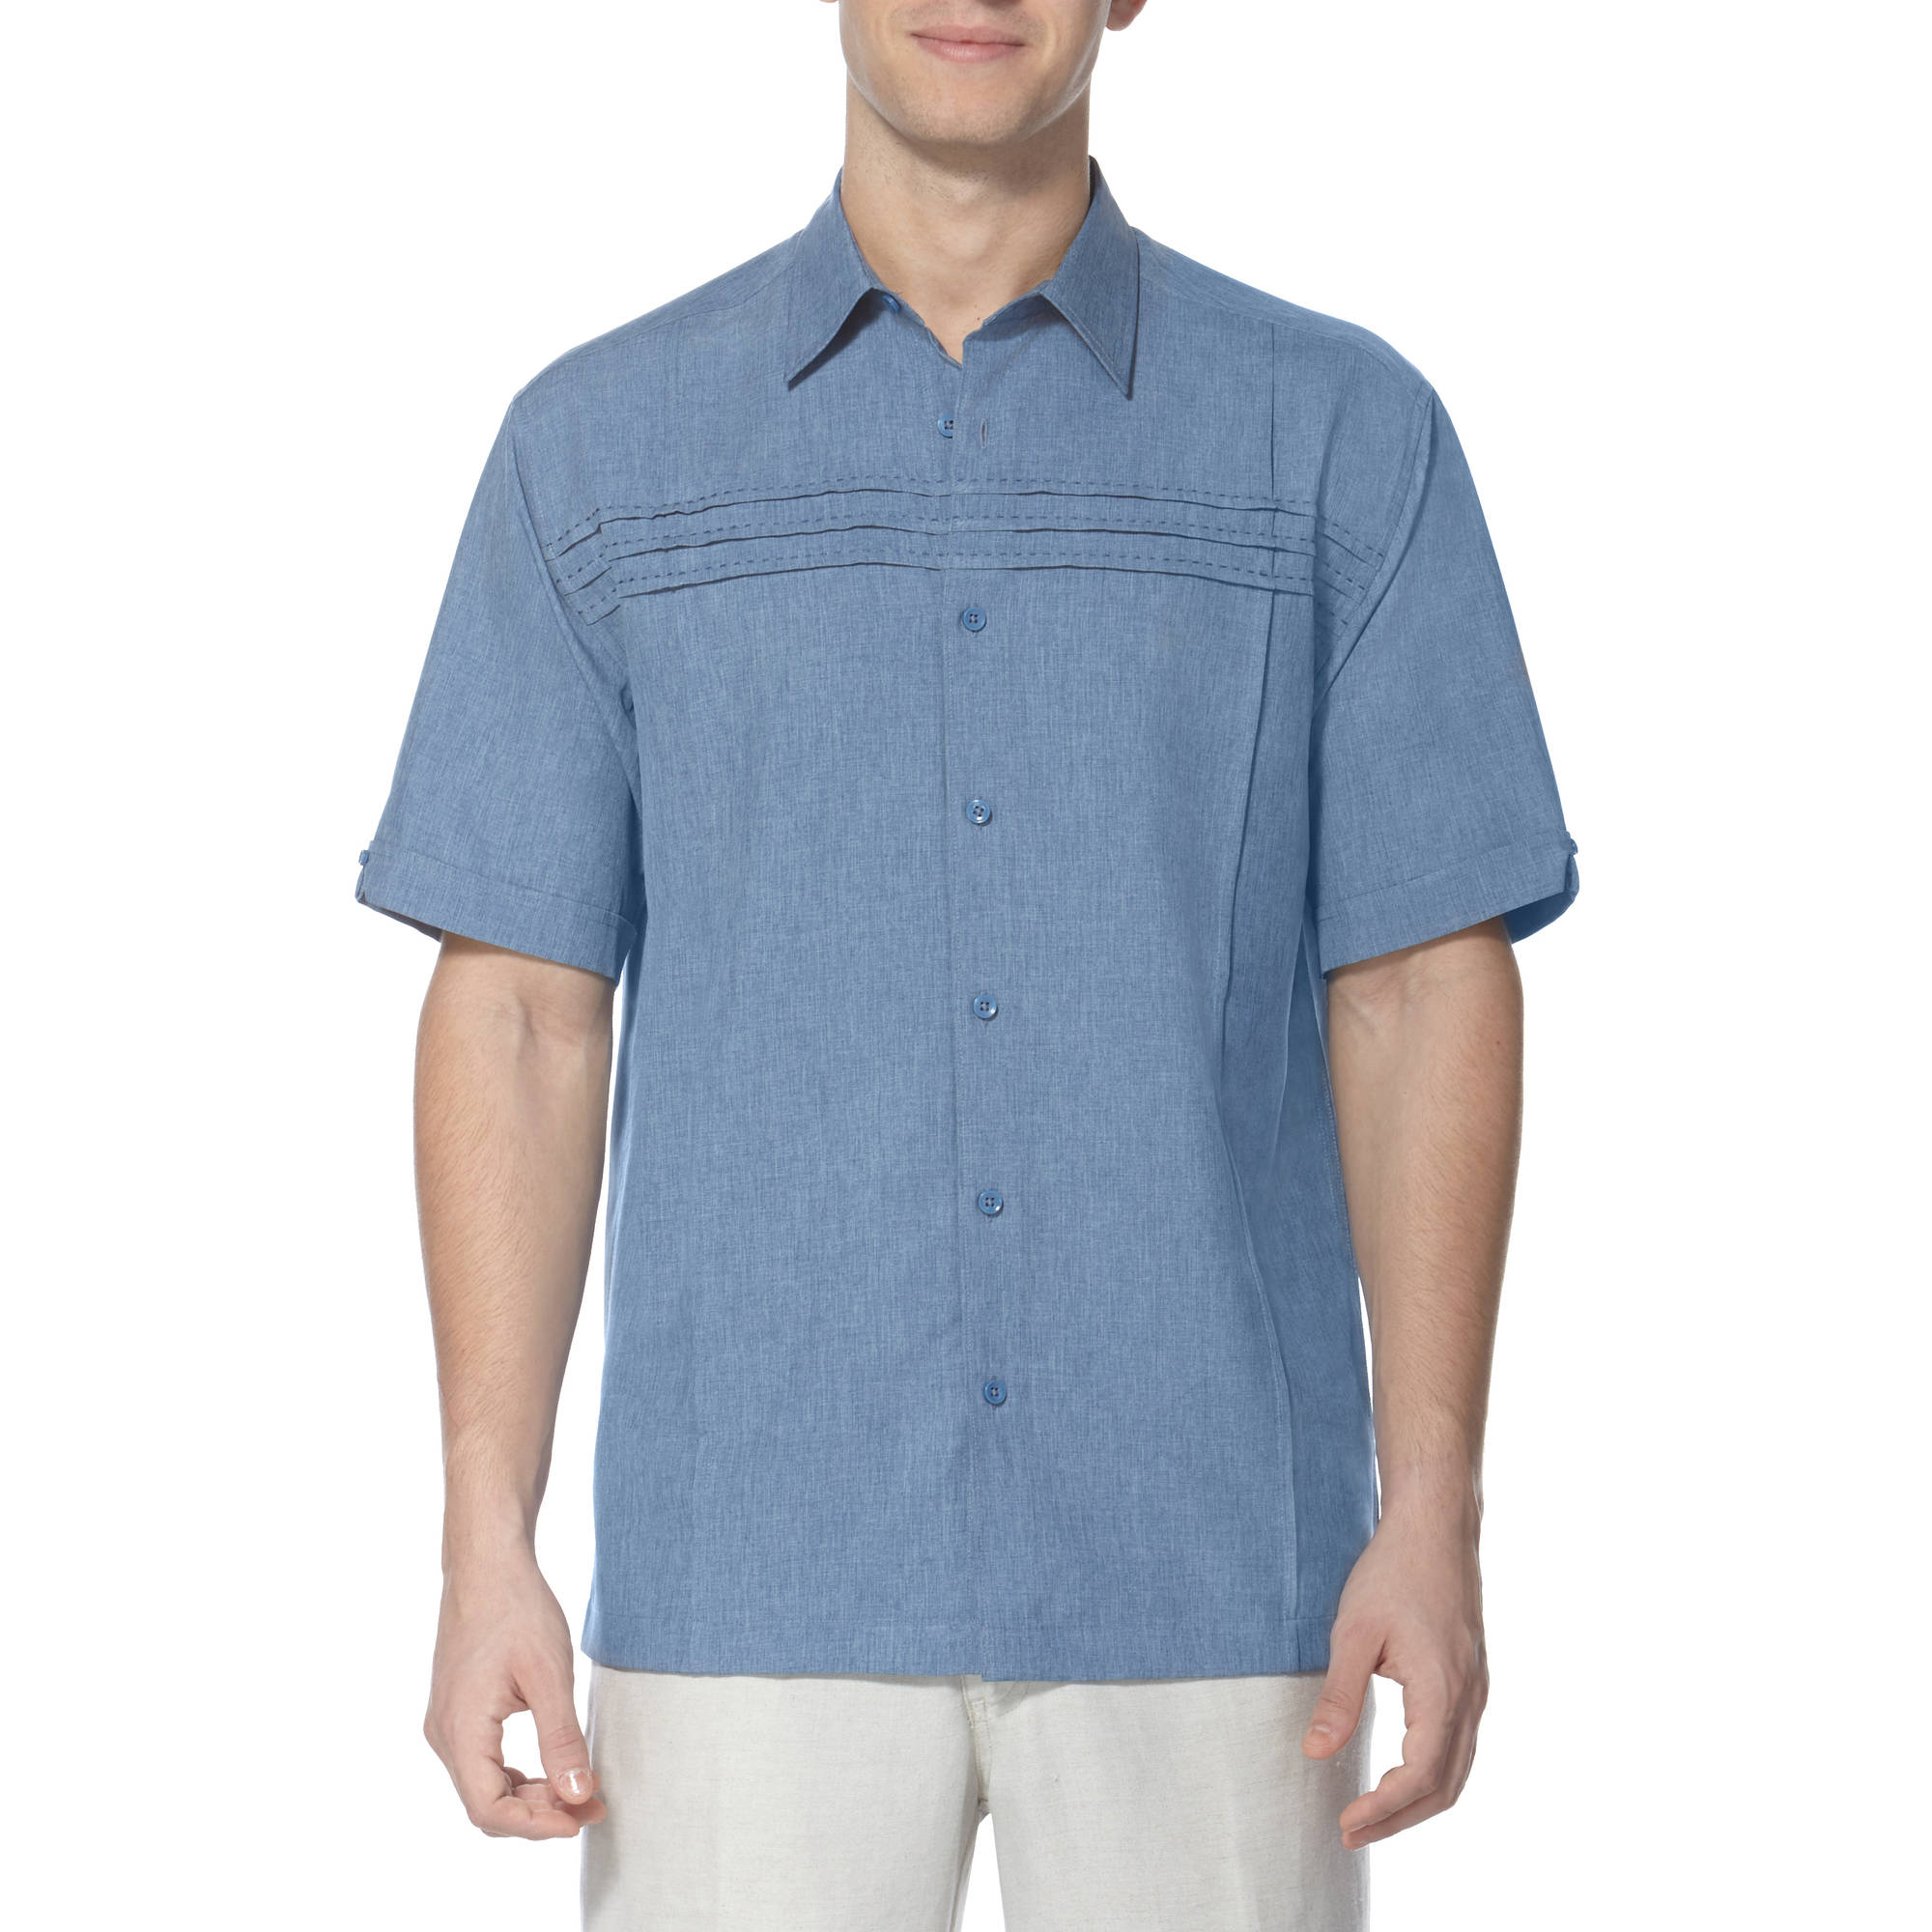 Caf Luna Men's Horizontal Chest Stripe Shirt